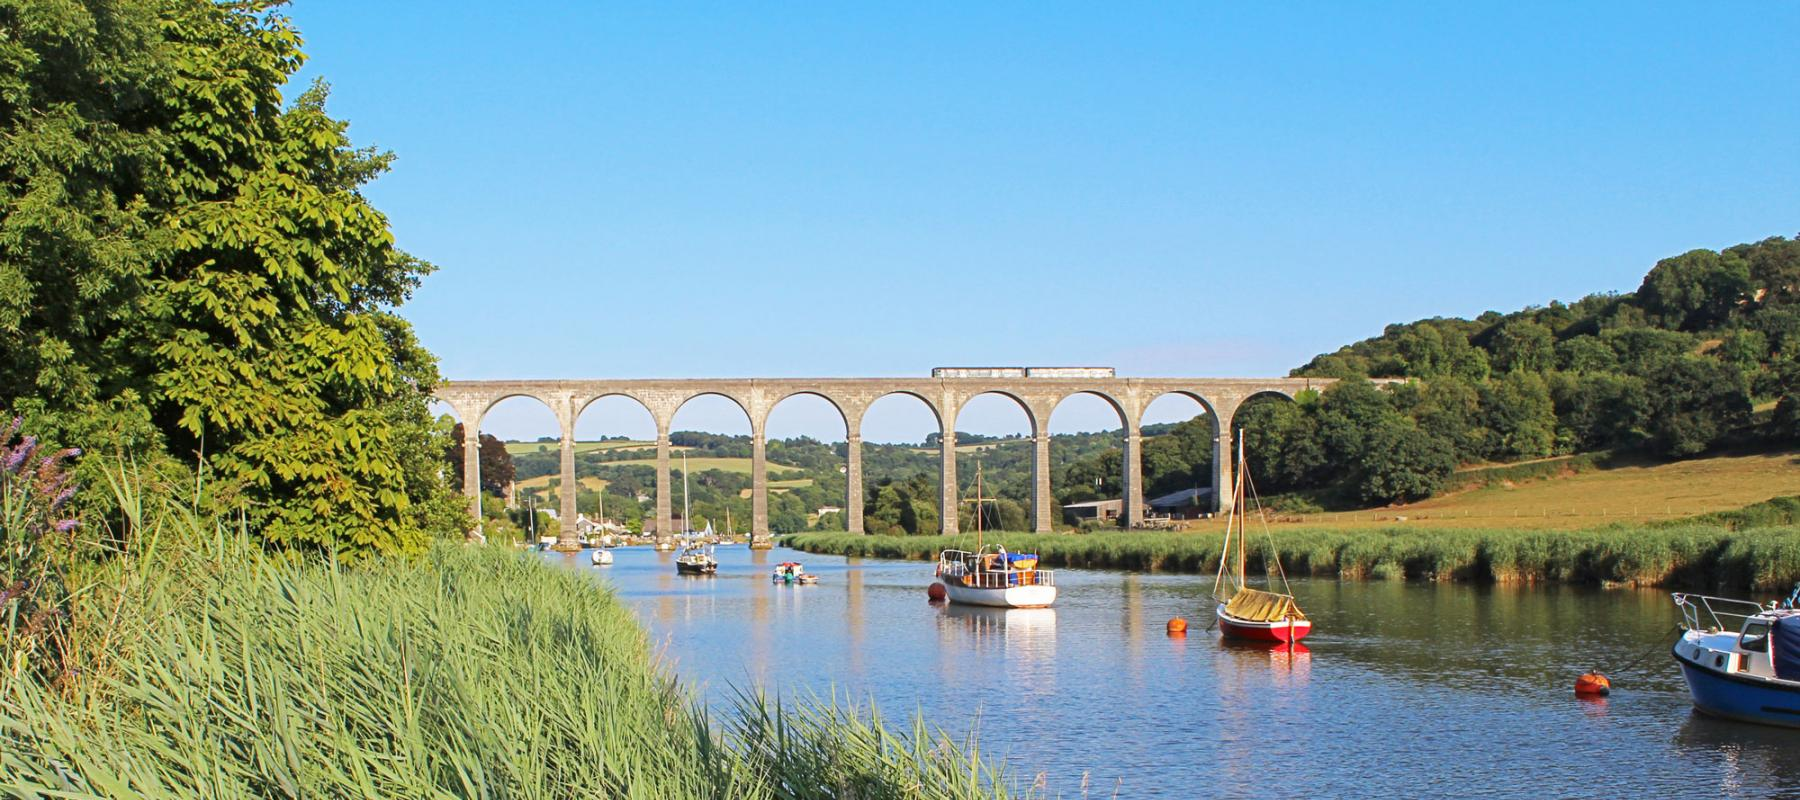 Train on Calstock viaduct on the Tamar Valley Line